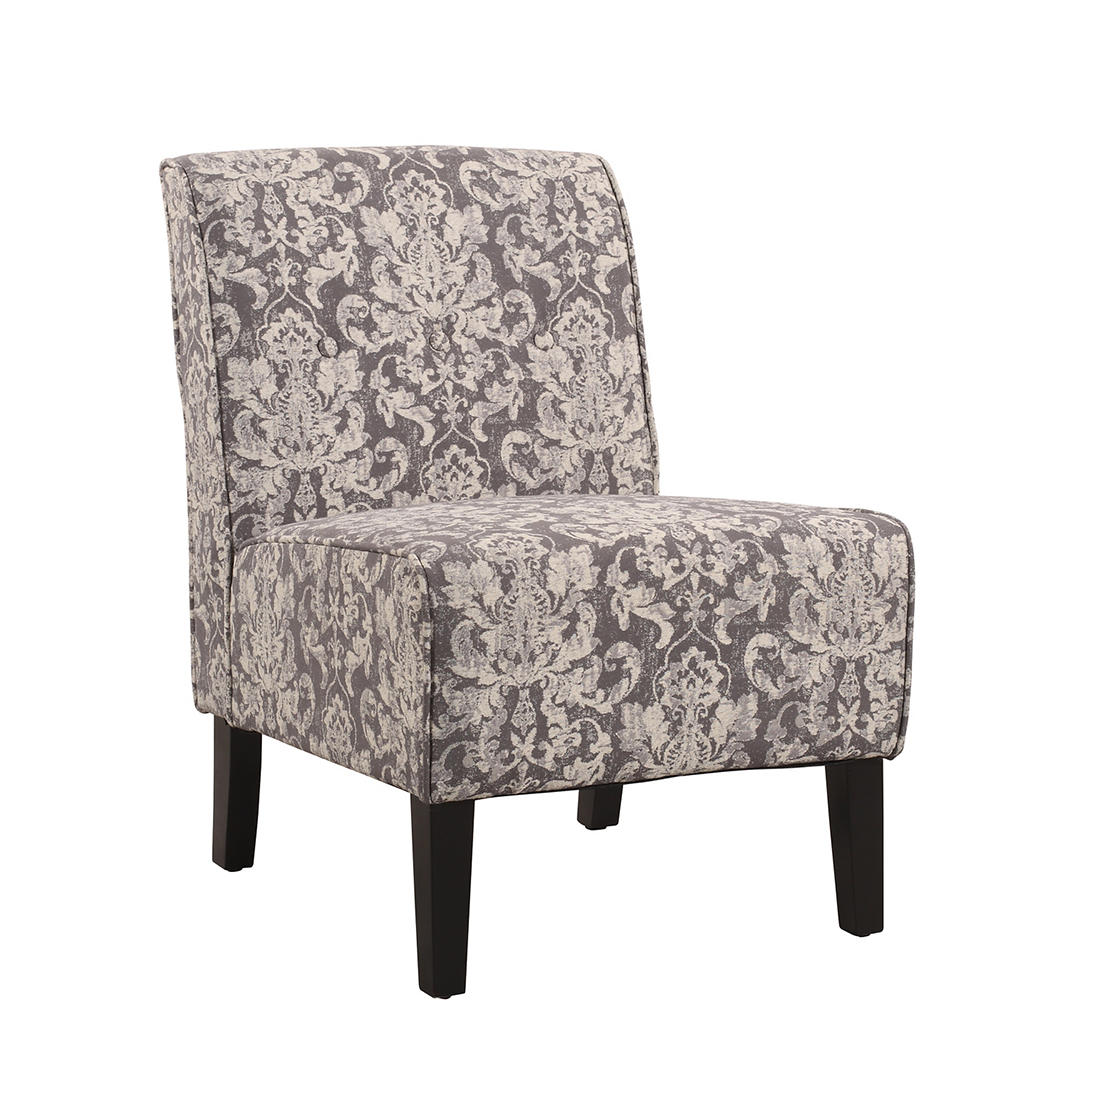 Awe Inspiring Linon Coco Fabric Accent Chair Gray Damask Andrewgaddart Wooden Chair Designs For Living Room Andrewgaddartcom